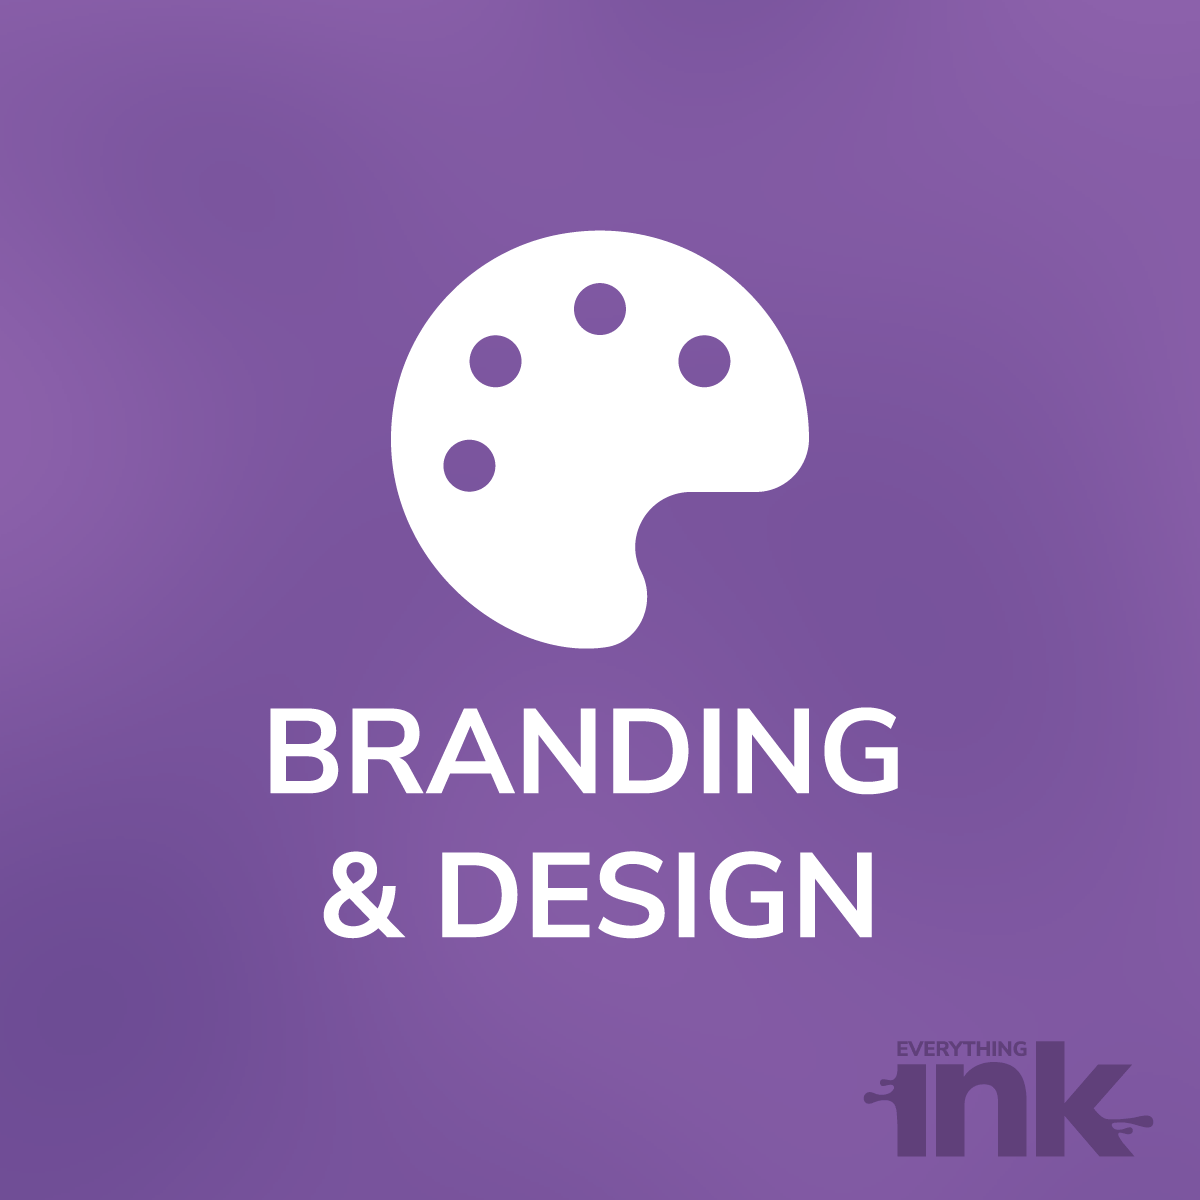 Branding and Design by Everything Ink